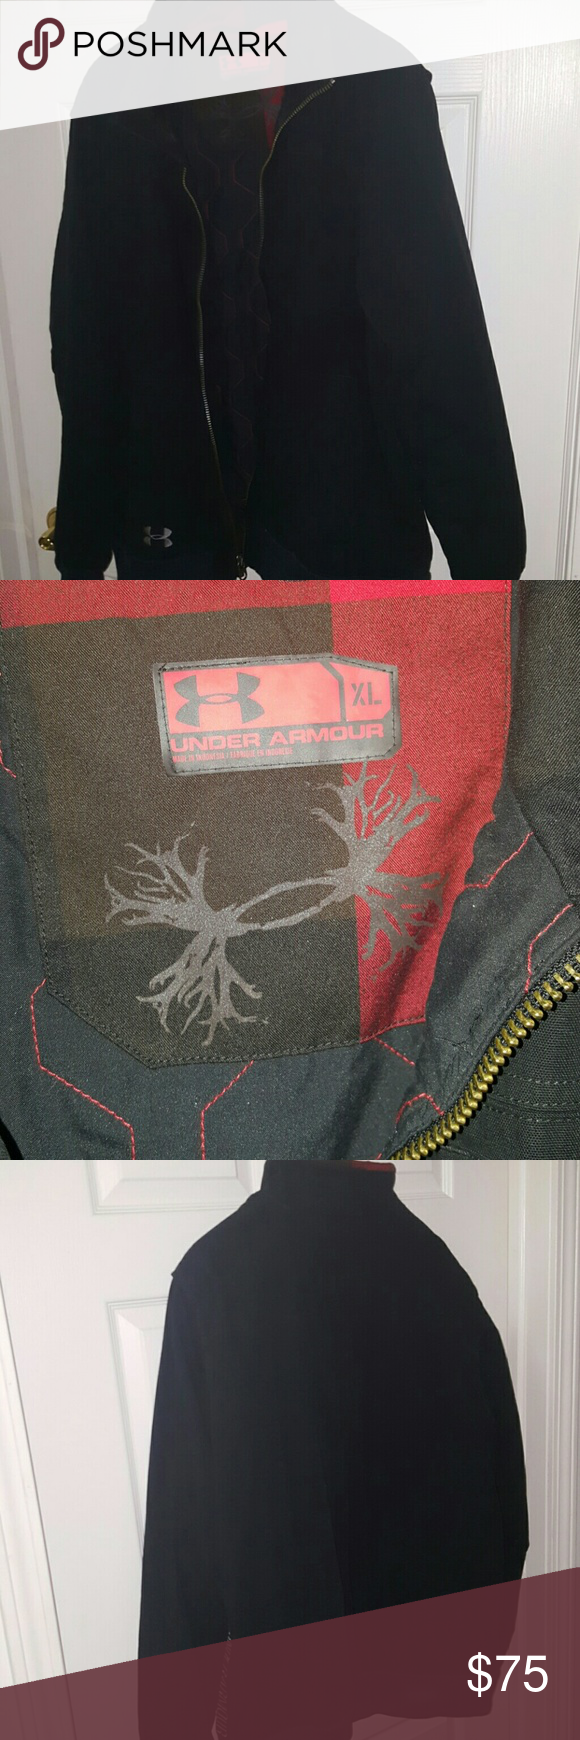 Amazing NWOT UA coat Men's XL, no defects, fully working. Very warm. Under Armour Jackets & Coats